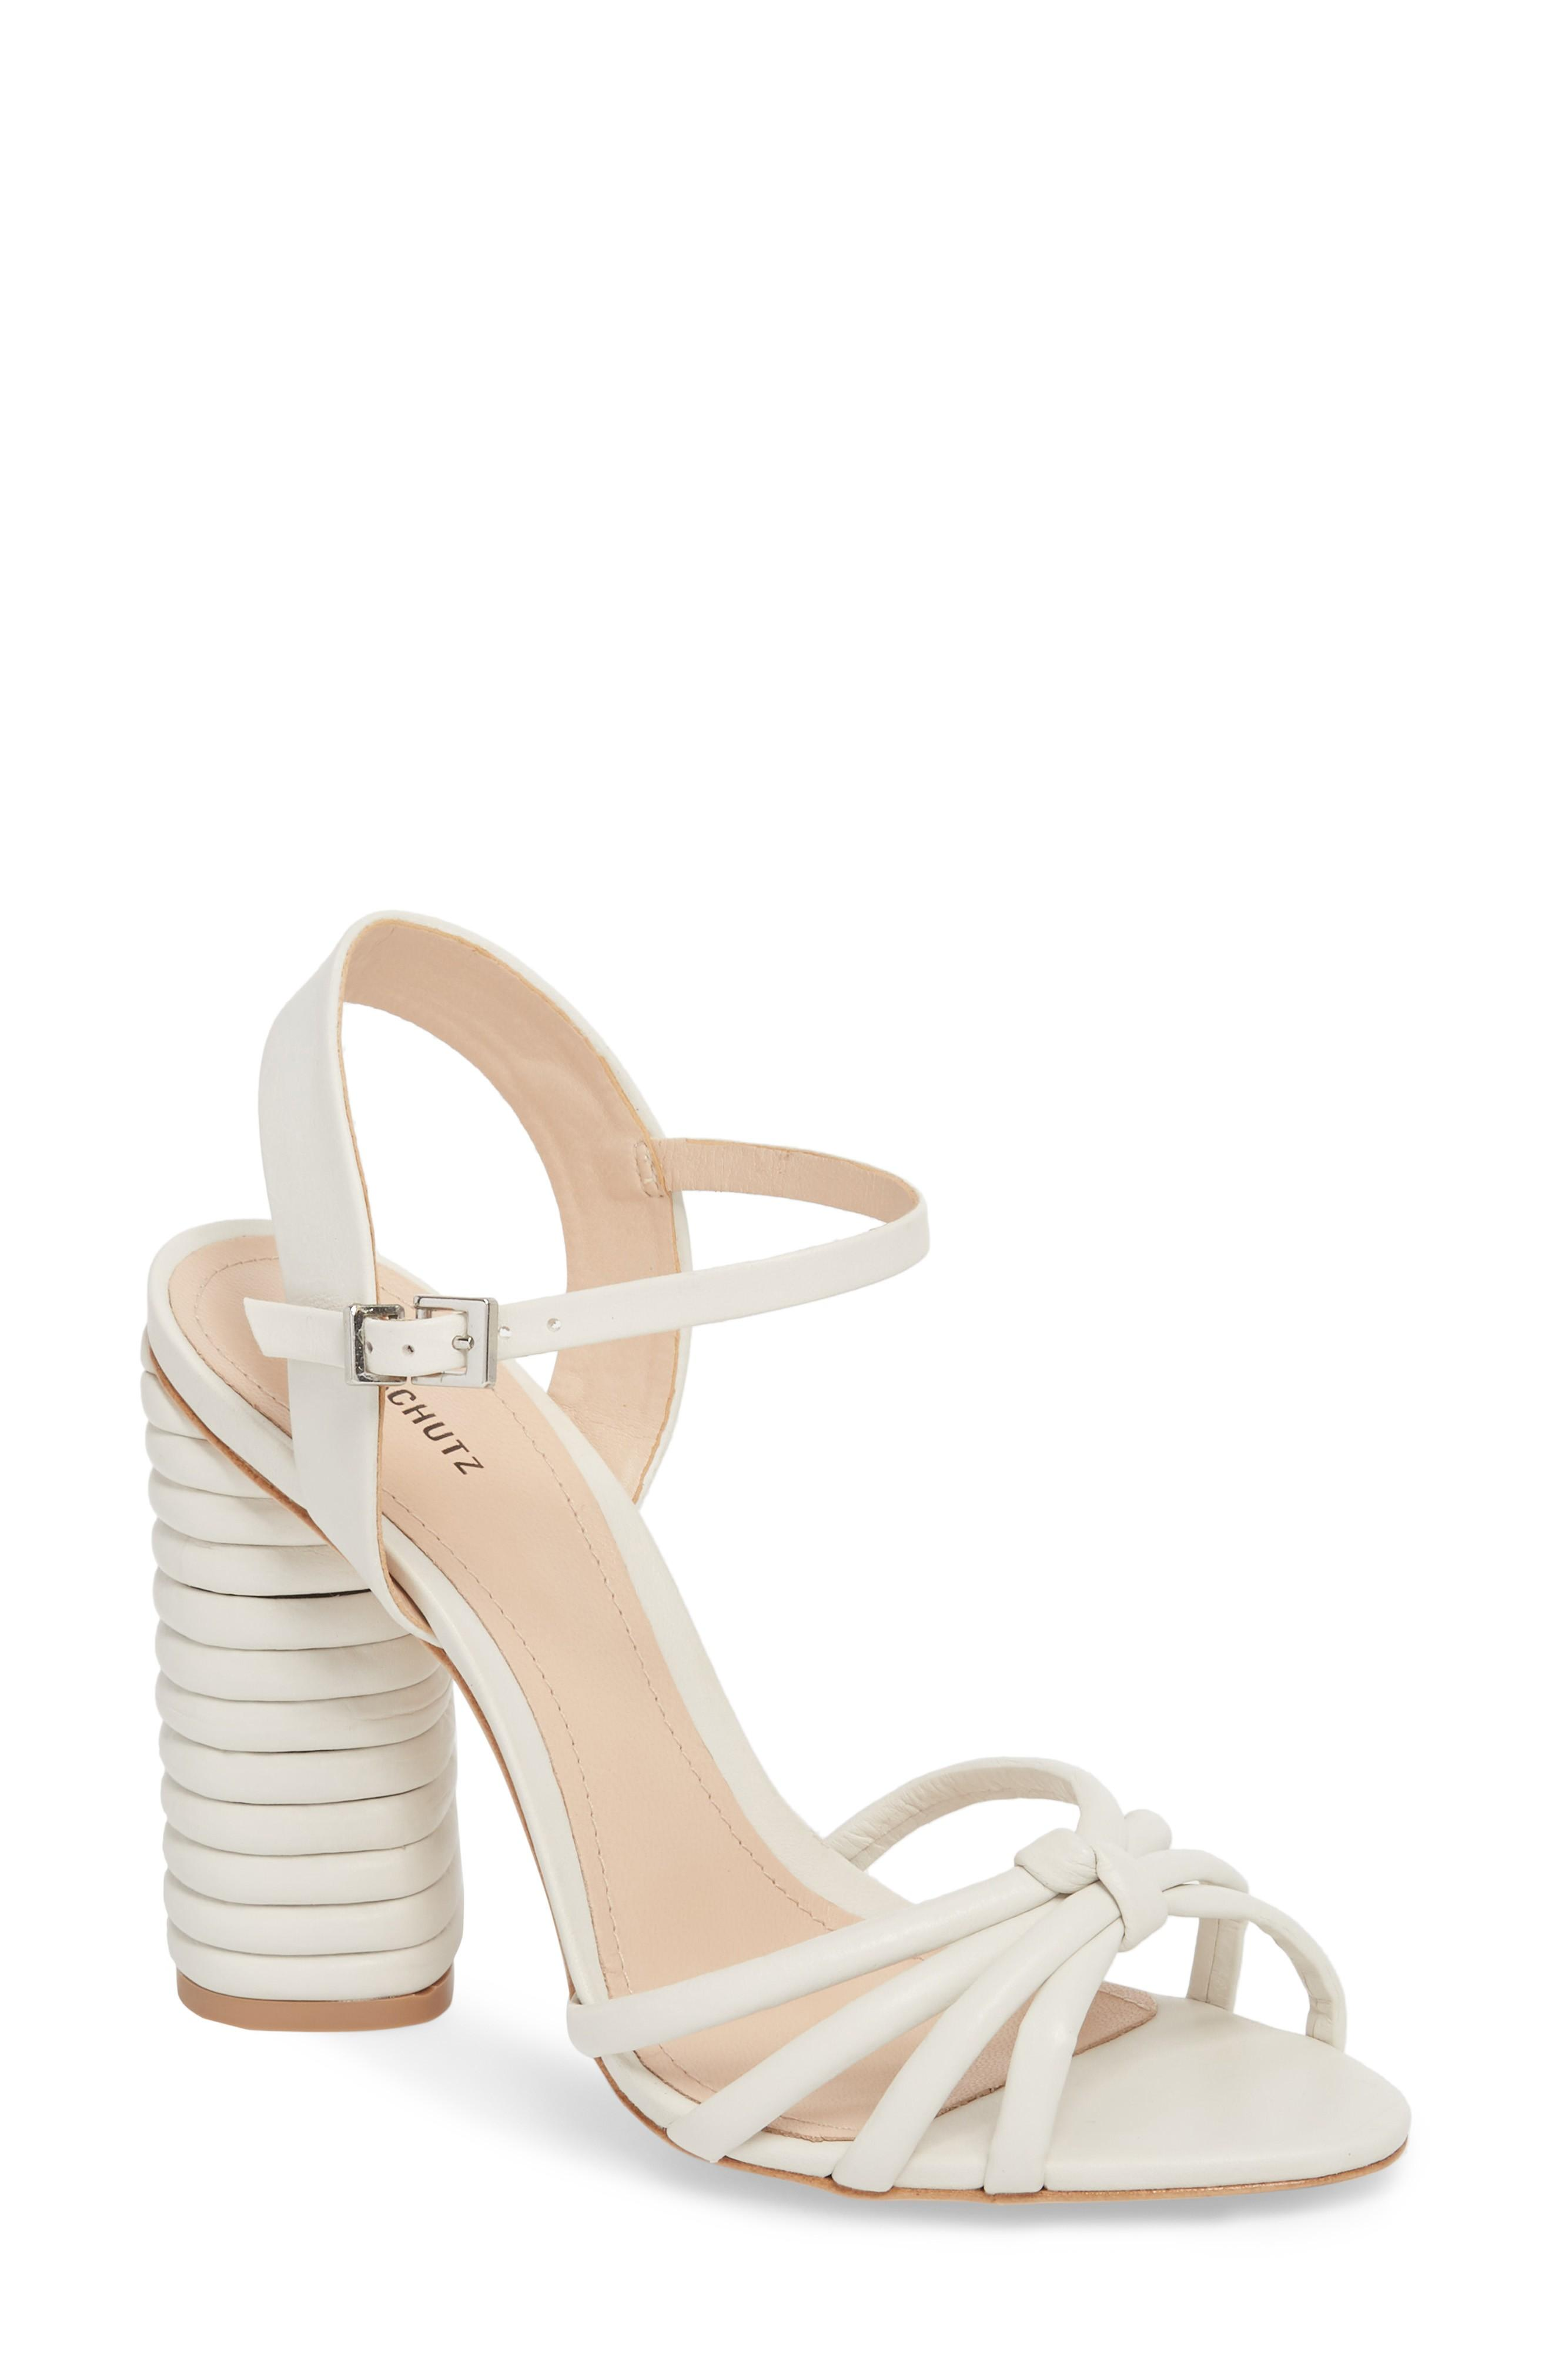 1bac5394f24 A textured column heel and tubular toe-straps add modern intrigue to this  strappy and sophisticated sandal. Style Name  Schutz Paolla Column Heel  Sandal ...